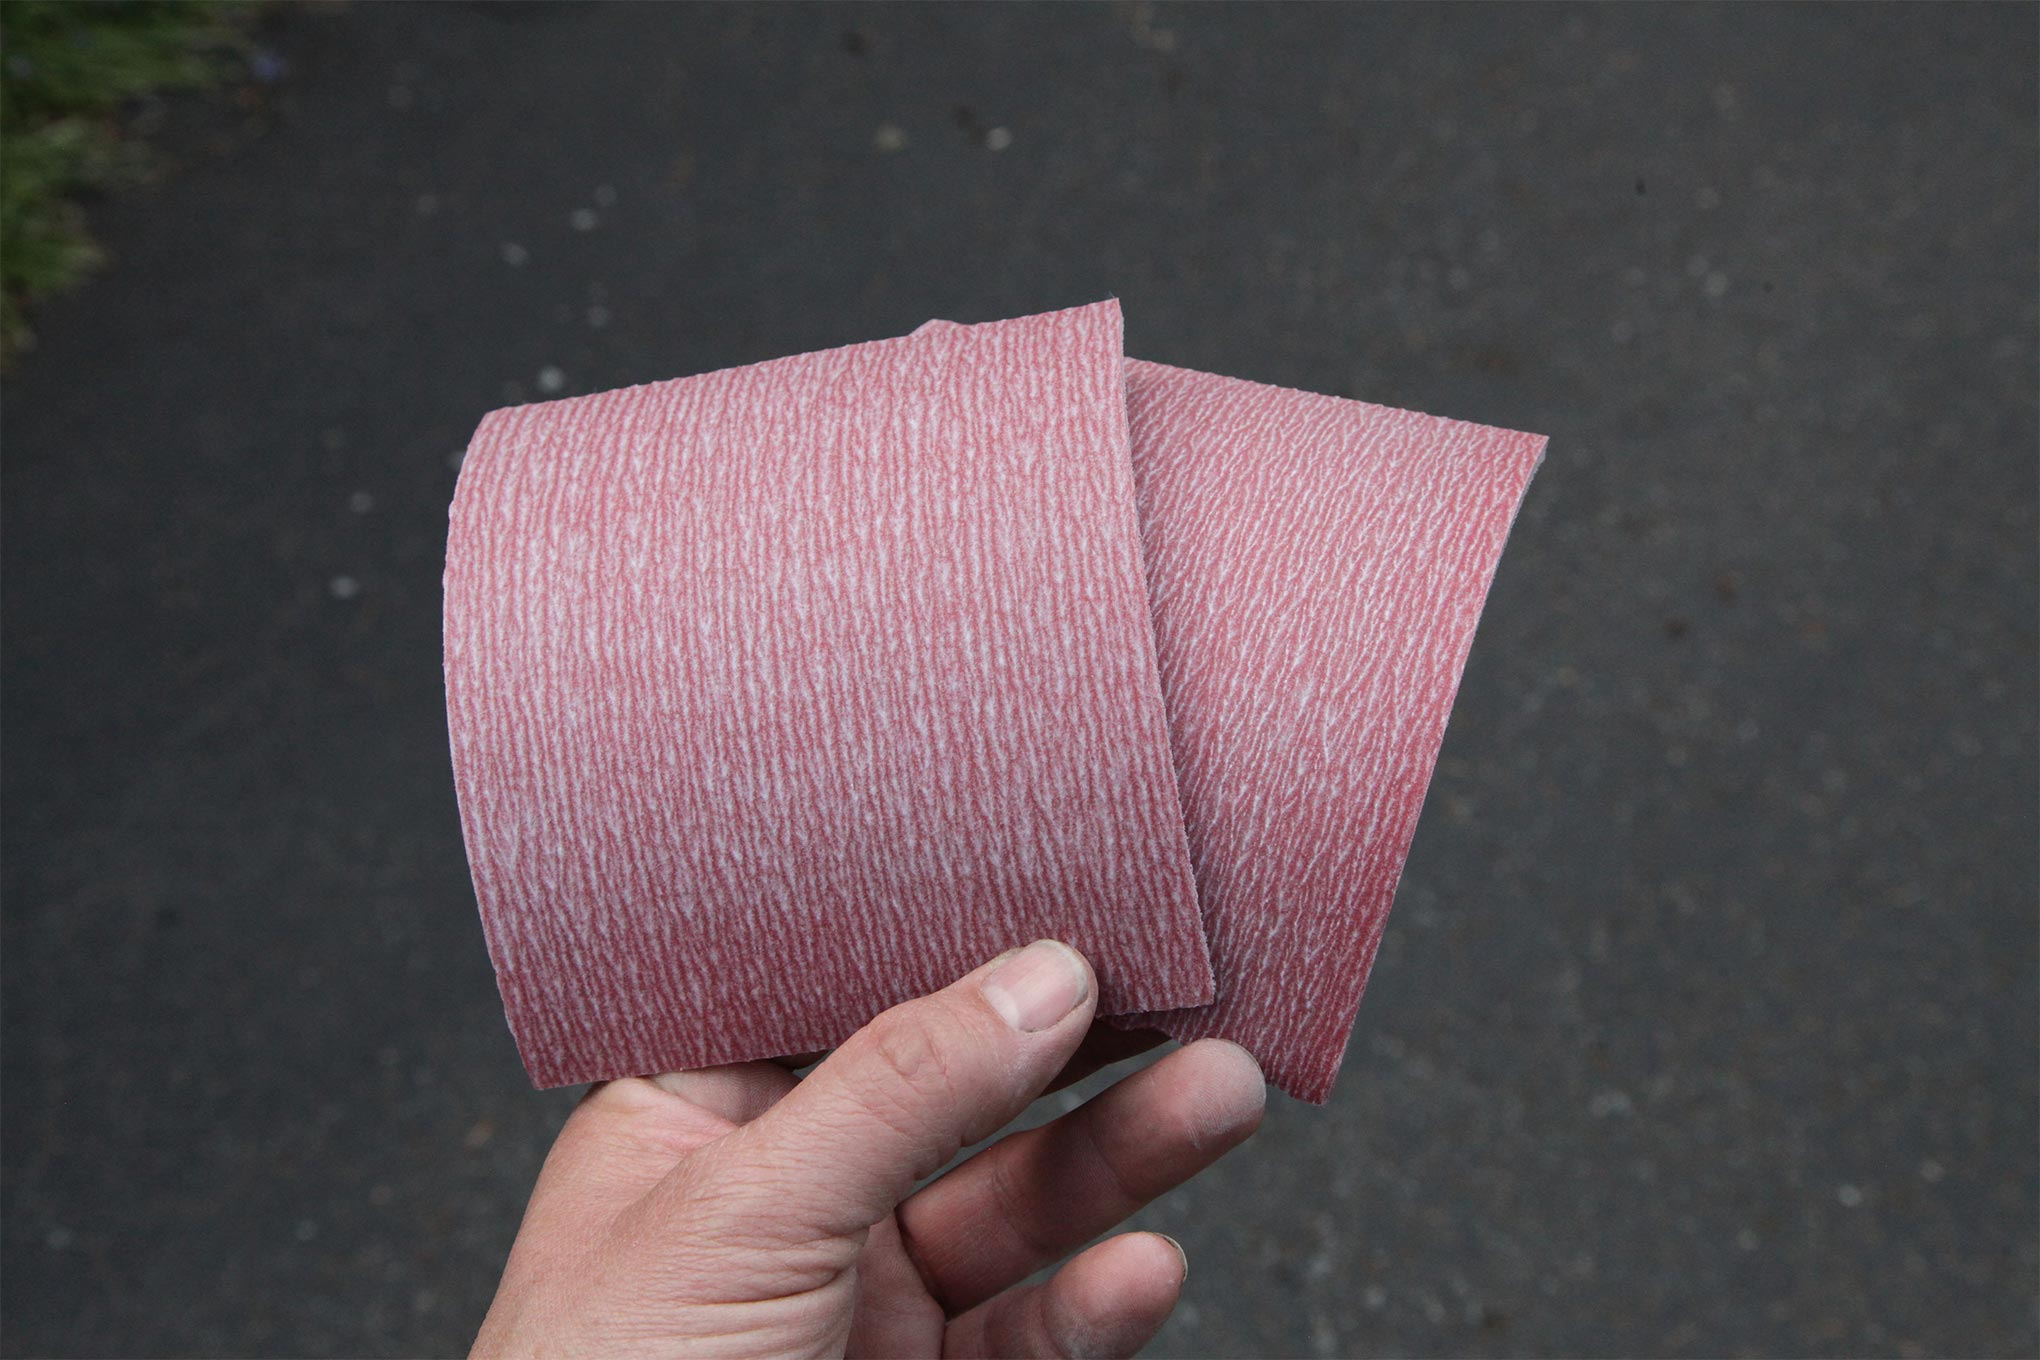 They appear the same but these two sanding pads are anything but: the one to the left has a 600-grit surface and the one on the right, 800. These finer grits are a consequence of the increased coverage capacity, which the manufacturers exploited to reduce material content, and by extension VOCs. Clint recommends going as fine as 1,200 for very-fine metallic finishes to prevent the metallic elements from orienting in the sandpaper scratches.